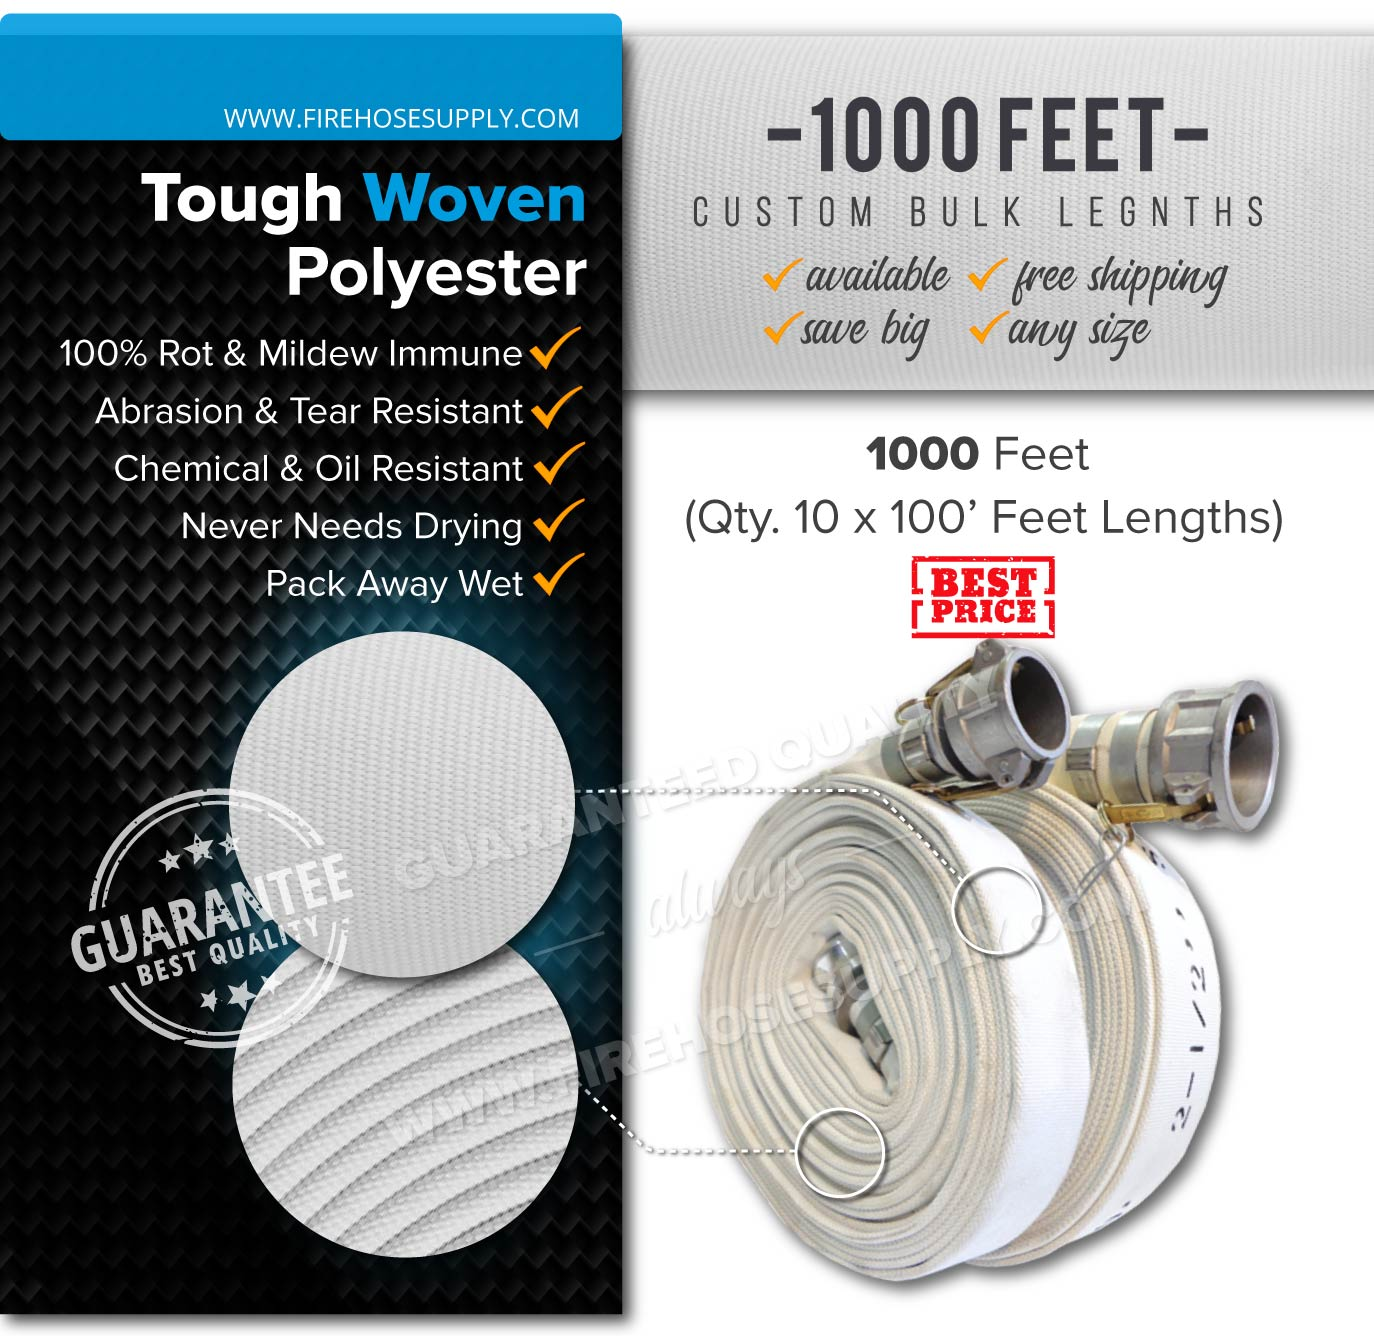 2 inch 100 feet camlock discharge quick connect hose (10) polyester bulk wholesale 1000 feet